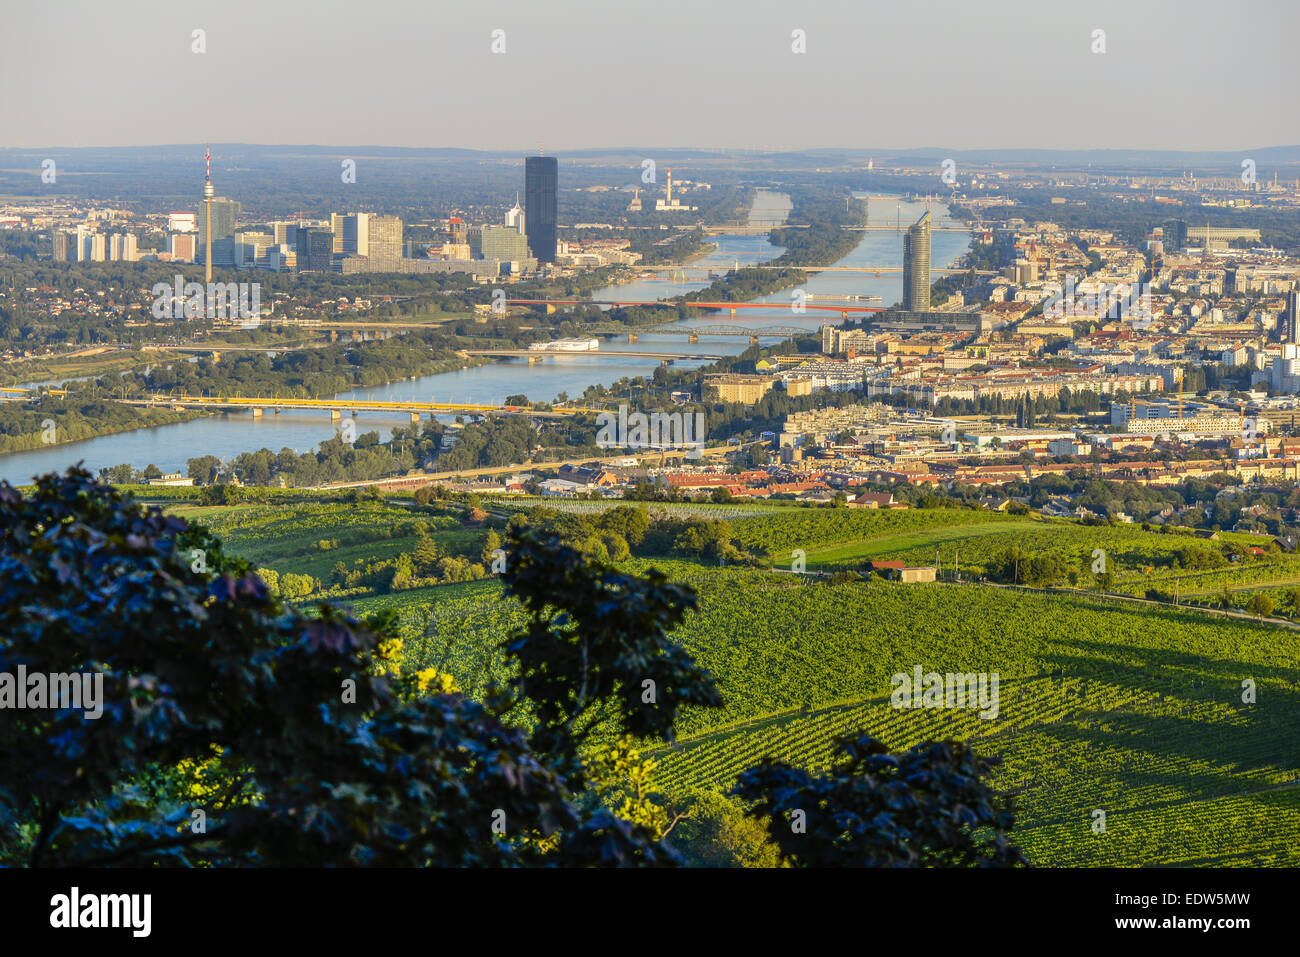 Wien View From Moutain Kahlenberg Vienna Austria Central Europe